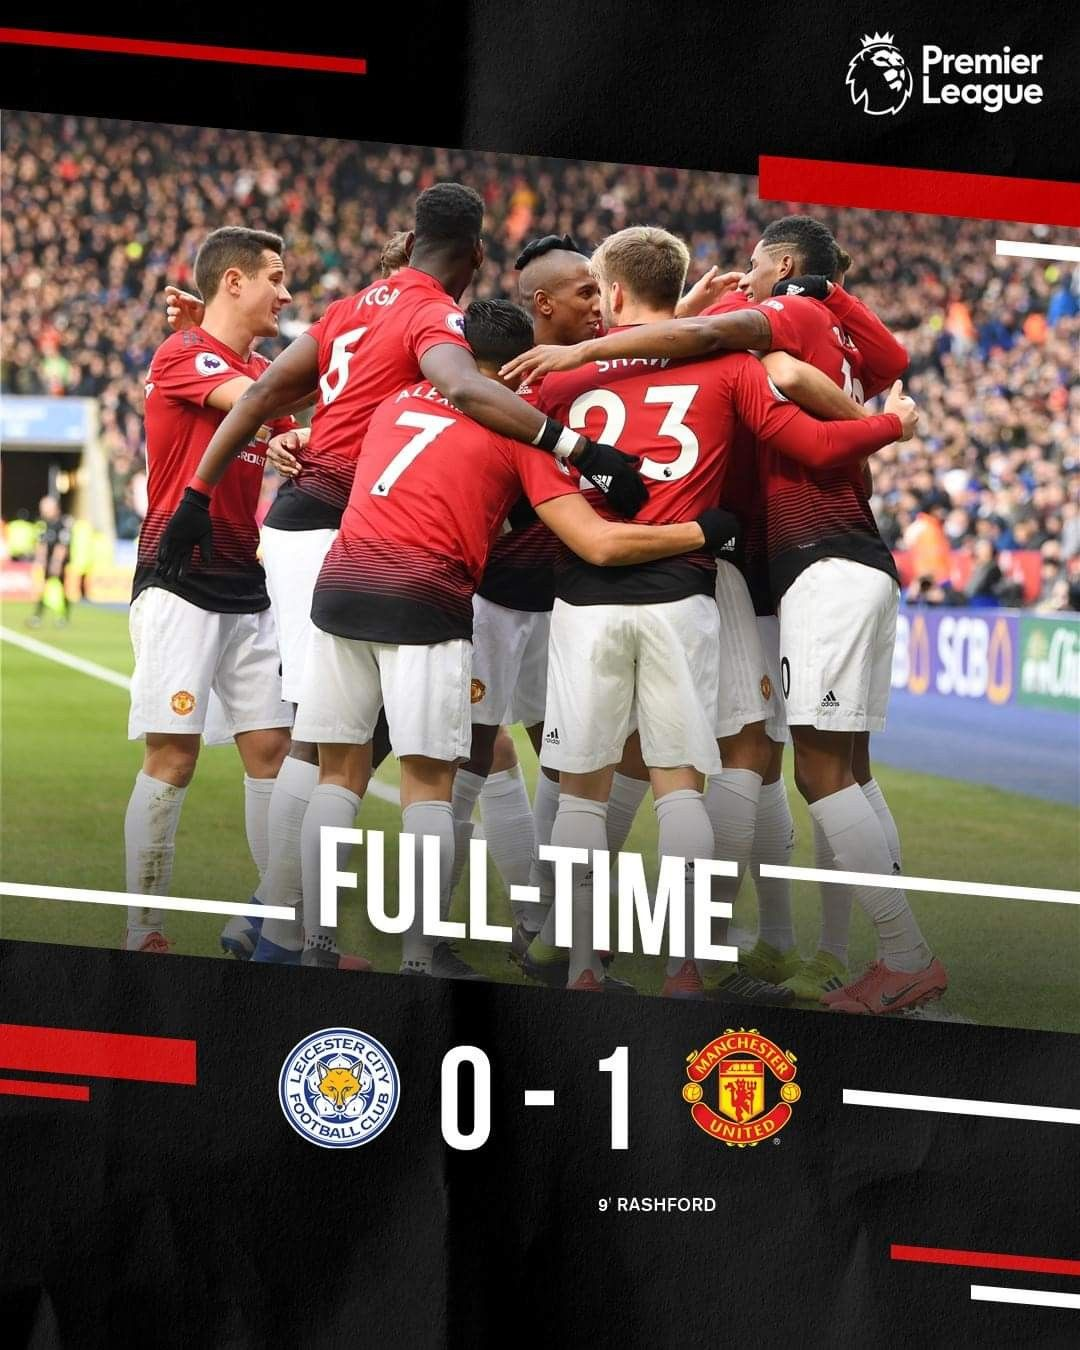 Pin By Ploy Naka On Mufc Manchester United Manchester United Football Premier League